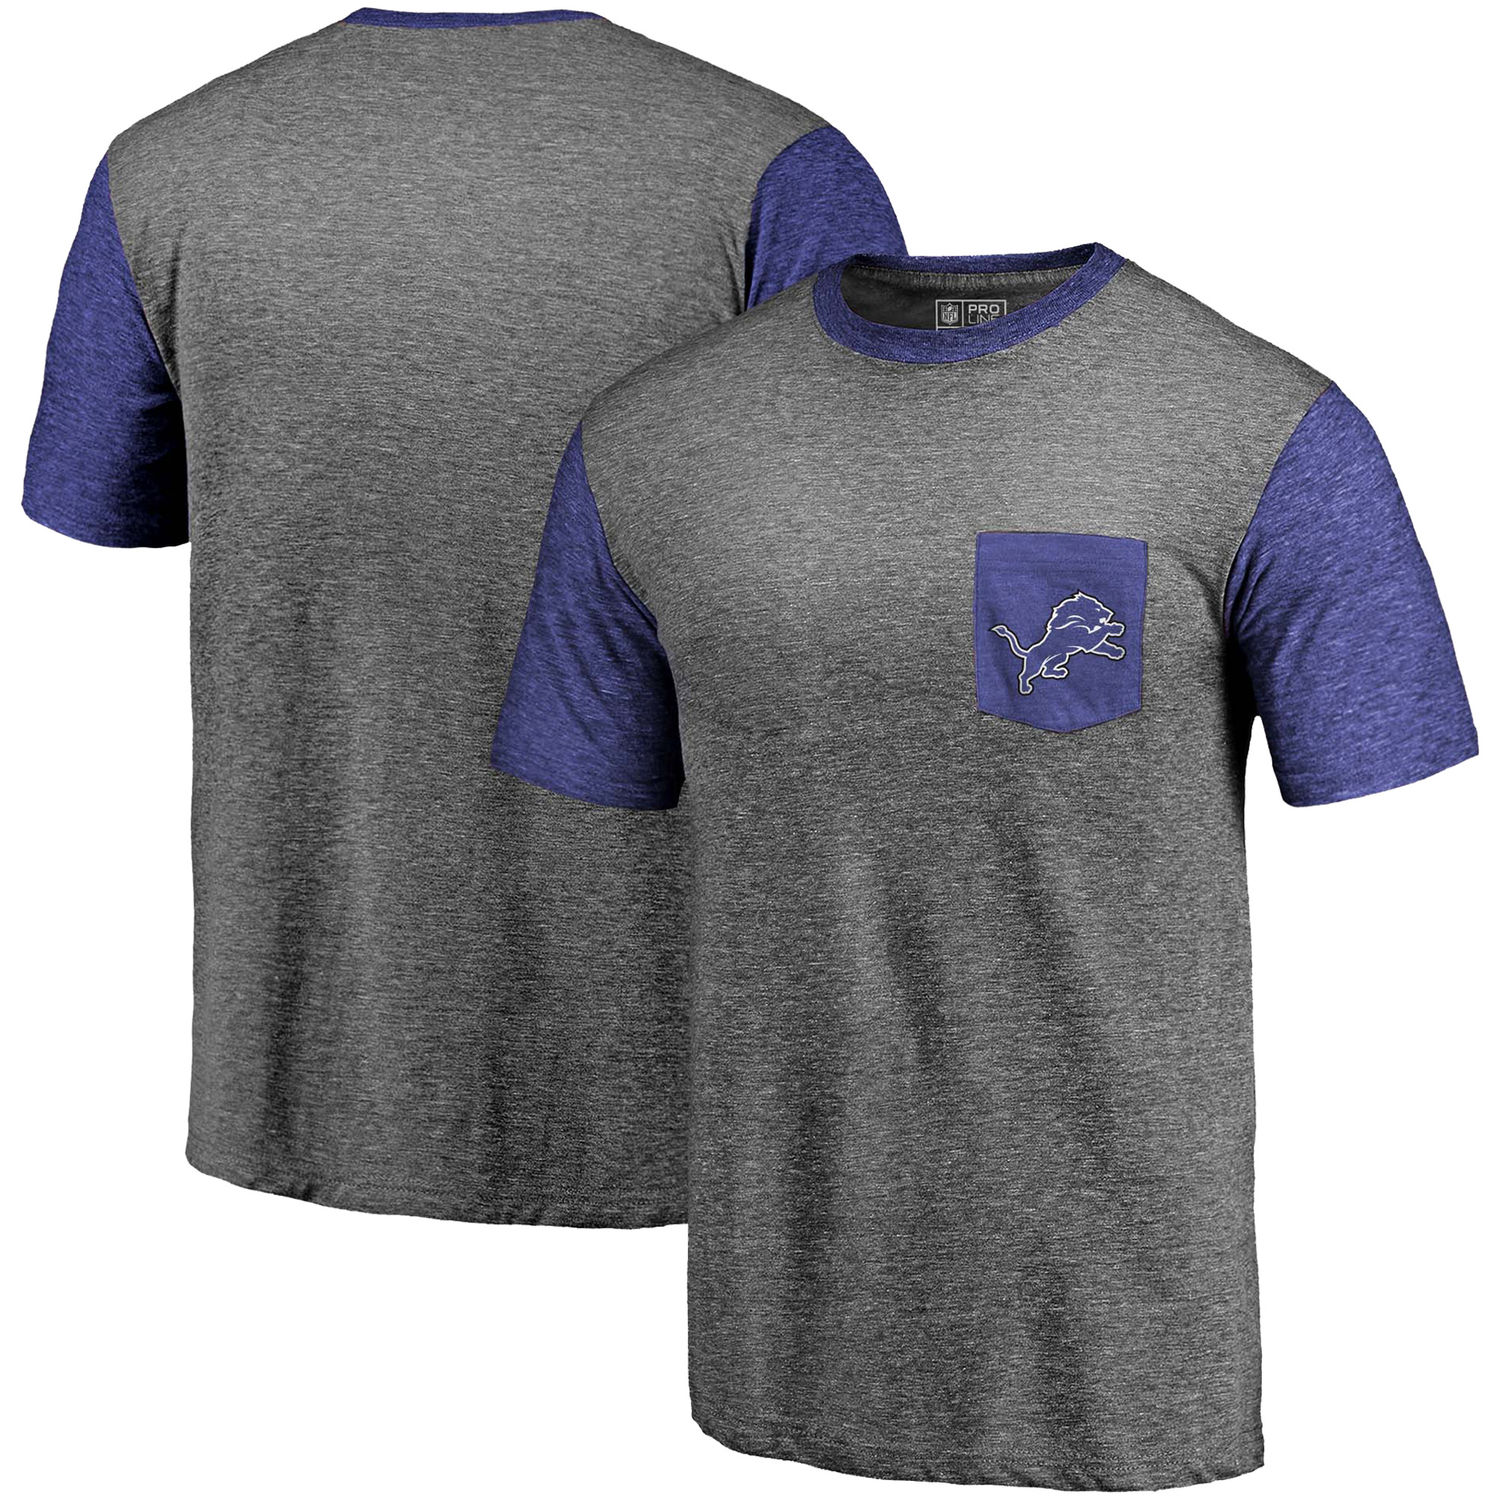 Men's Detroit Lions Pro Line by Fanatics Branded Heathered Gray-Blue Refresh Pocket T-Shirt